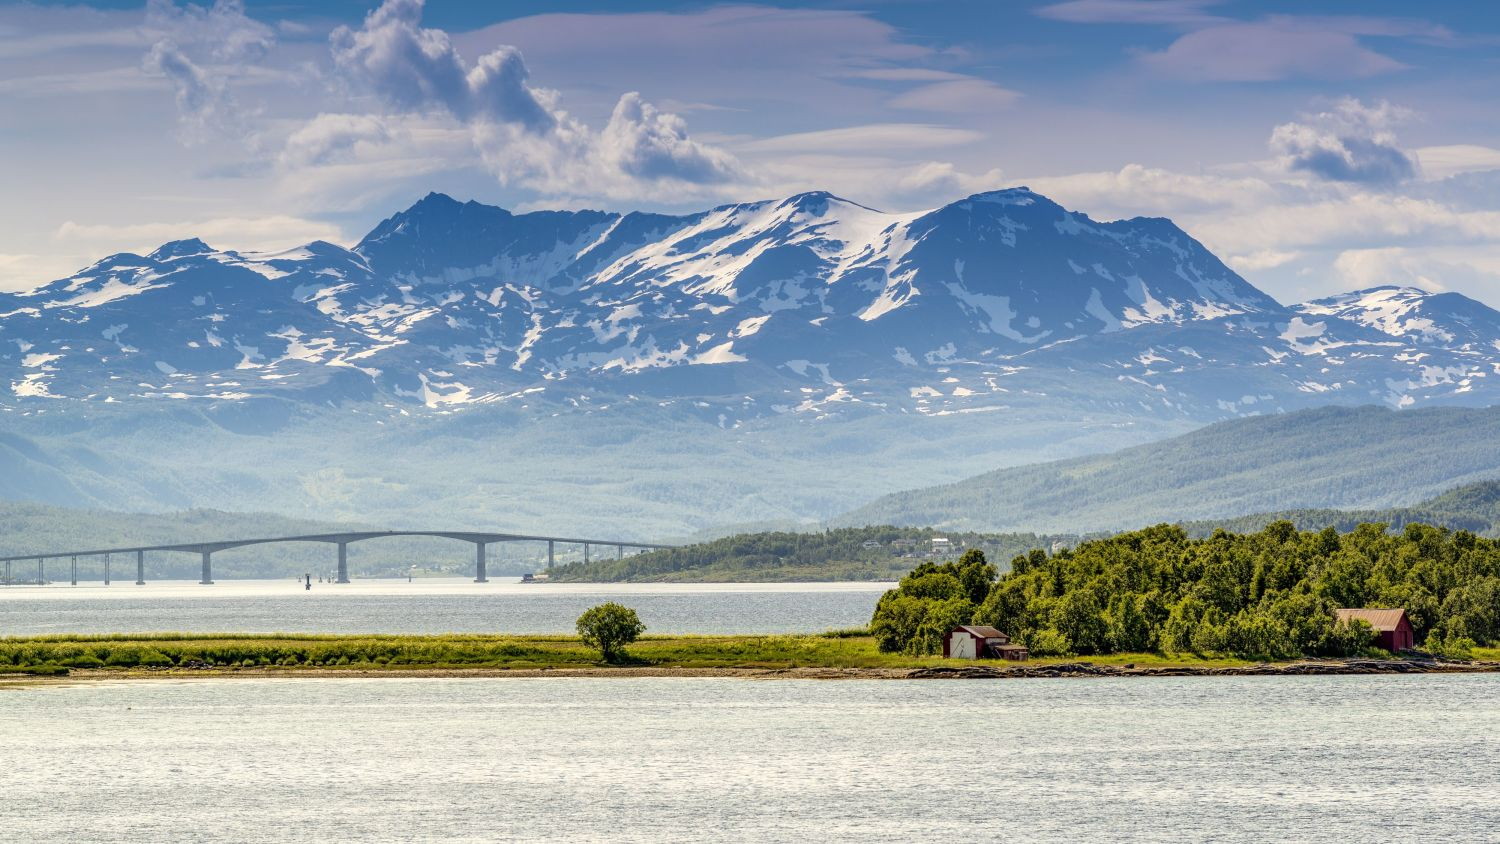 Mountains and the Gisund bridge in Finnsnes.